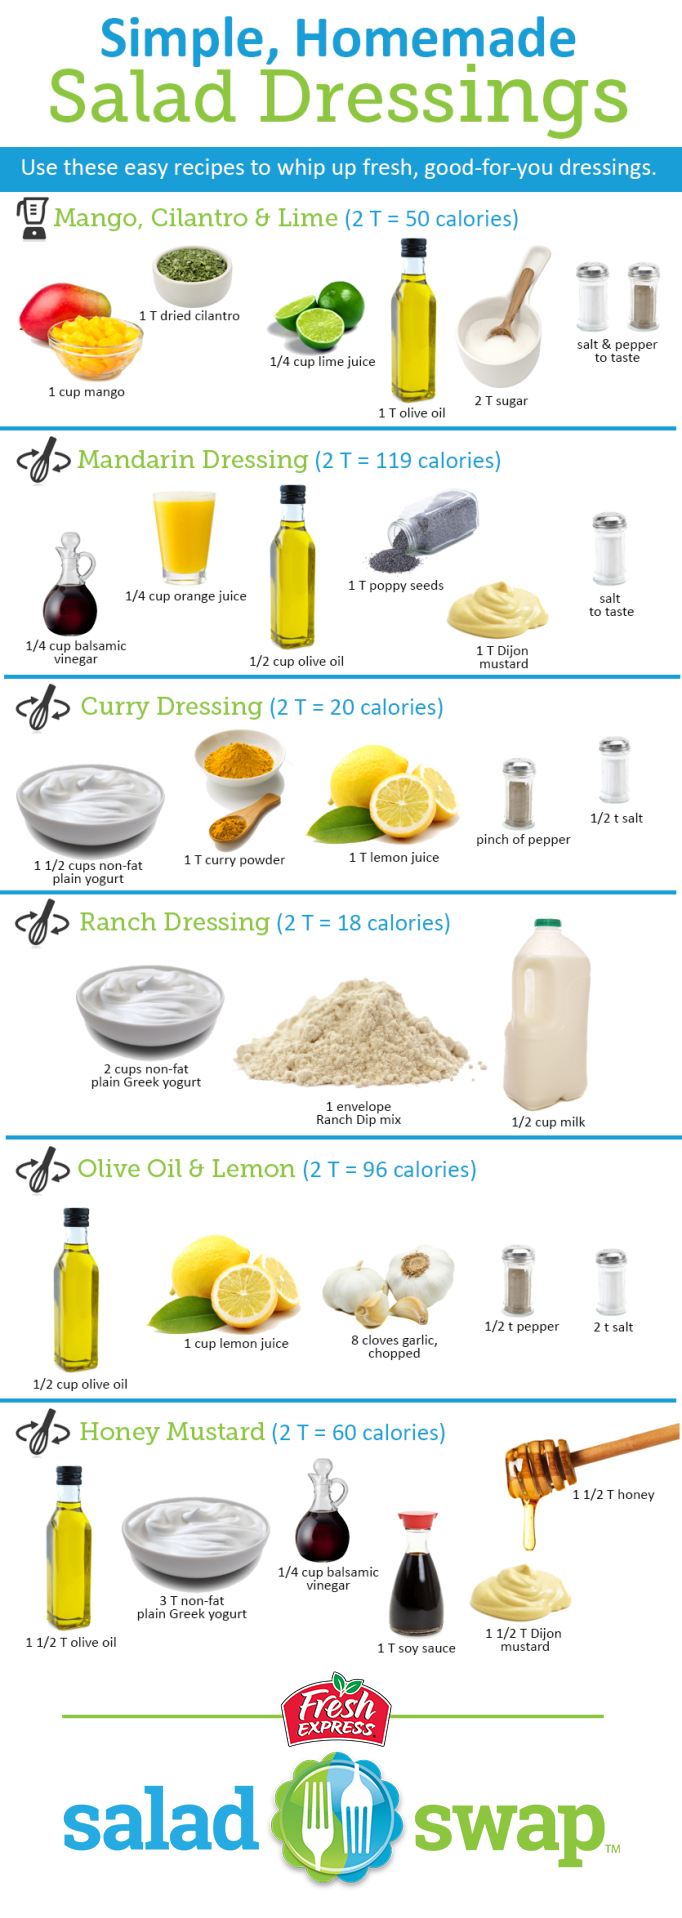 Simple, Homemade Salad Dressings | Why use store-bought, when you can whip up these 6 easy salad dressings in an instant? #saladswap #FreshExpress